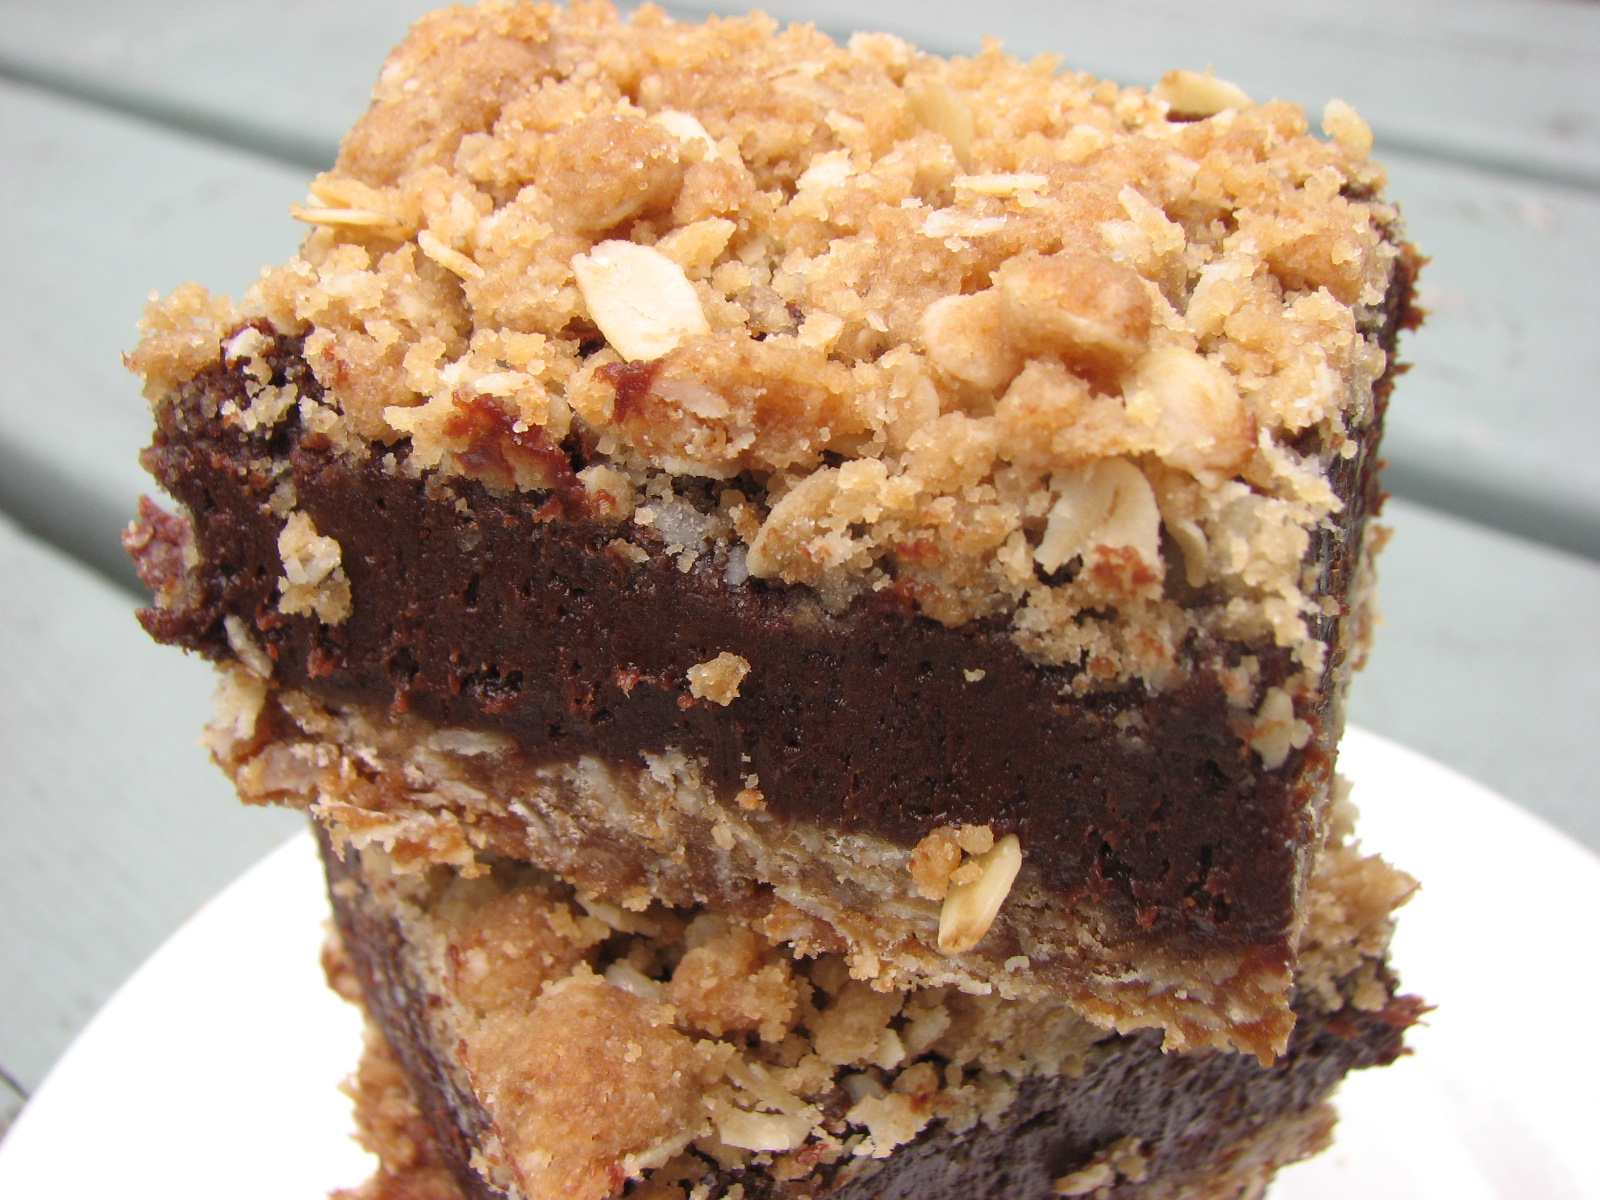 Heidi Bakes: Oatmeal Fudge Bars